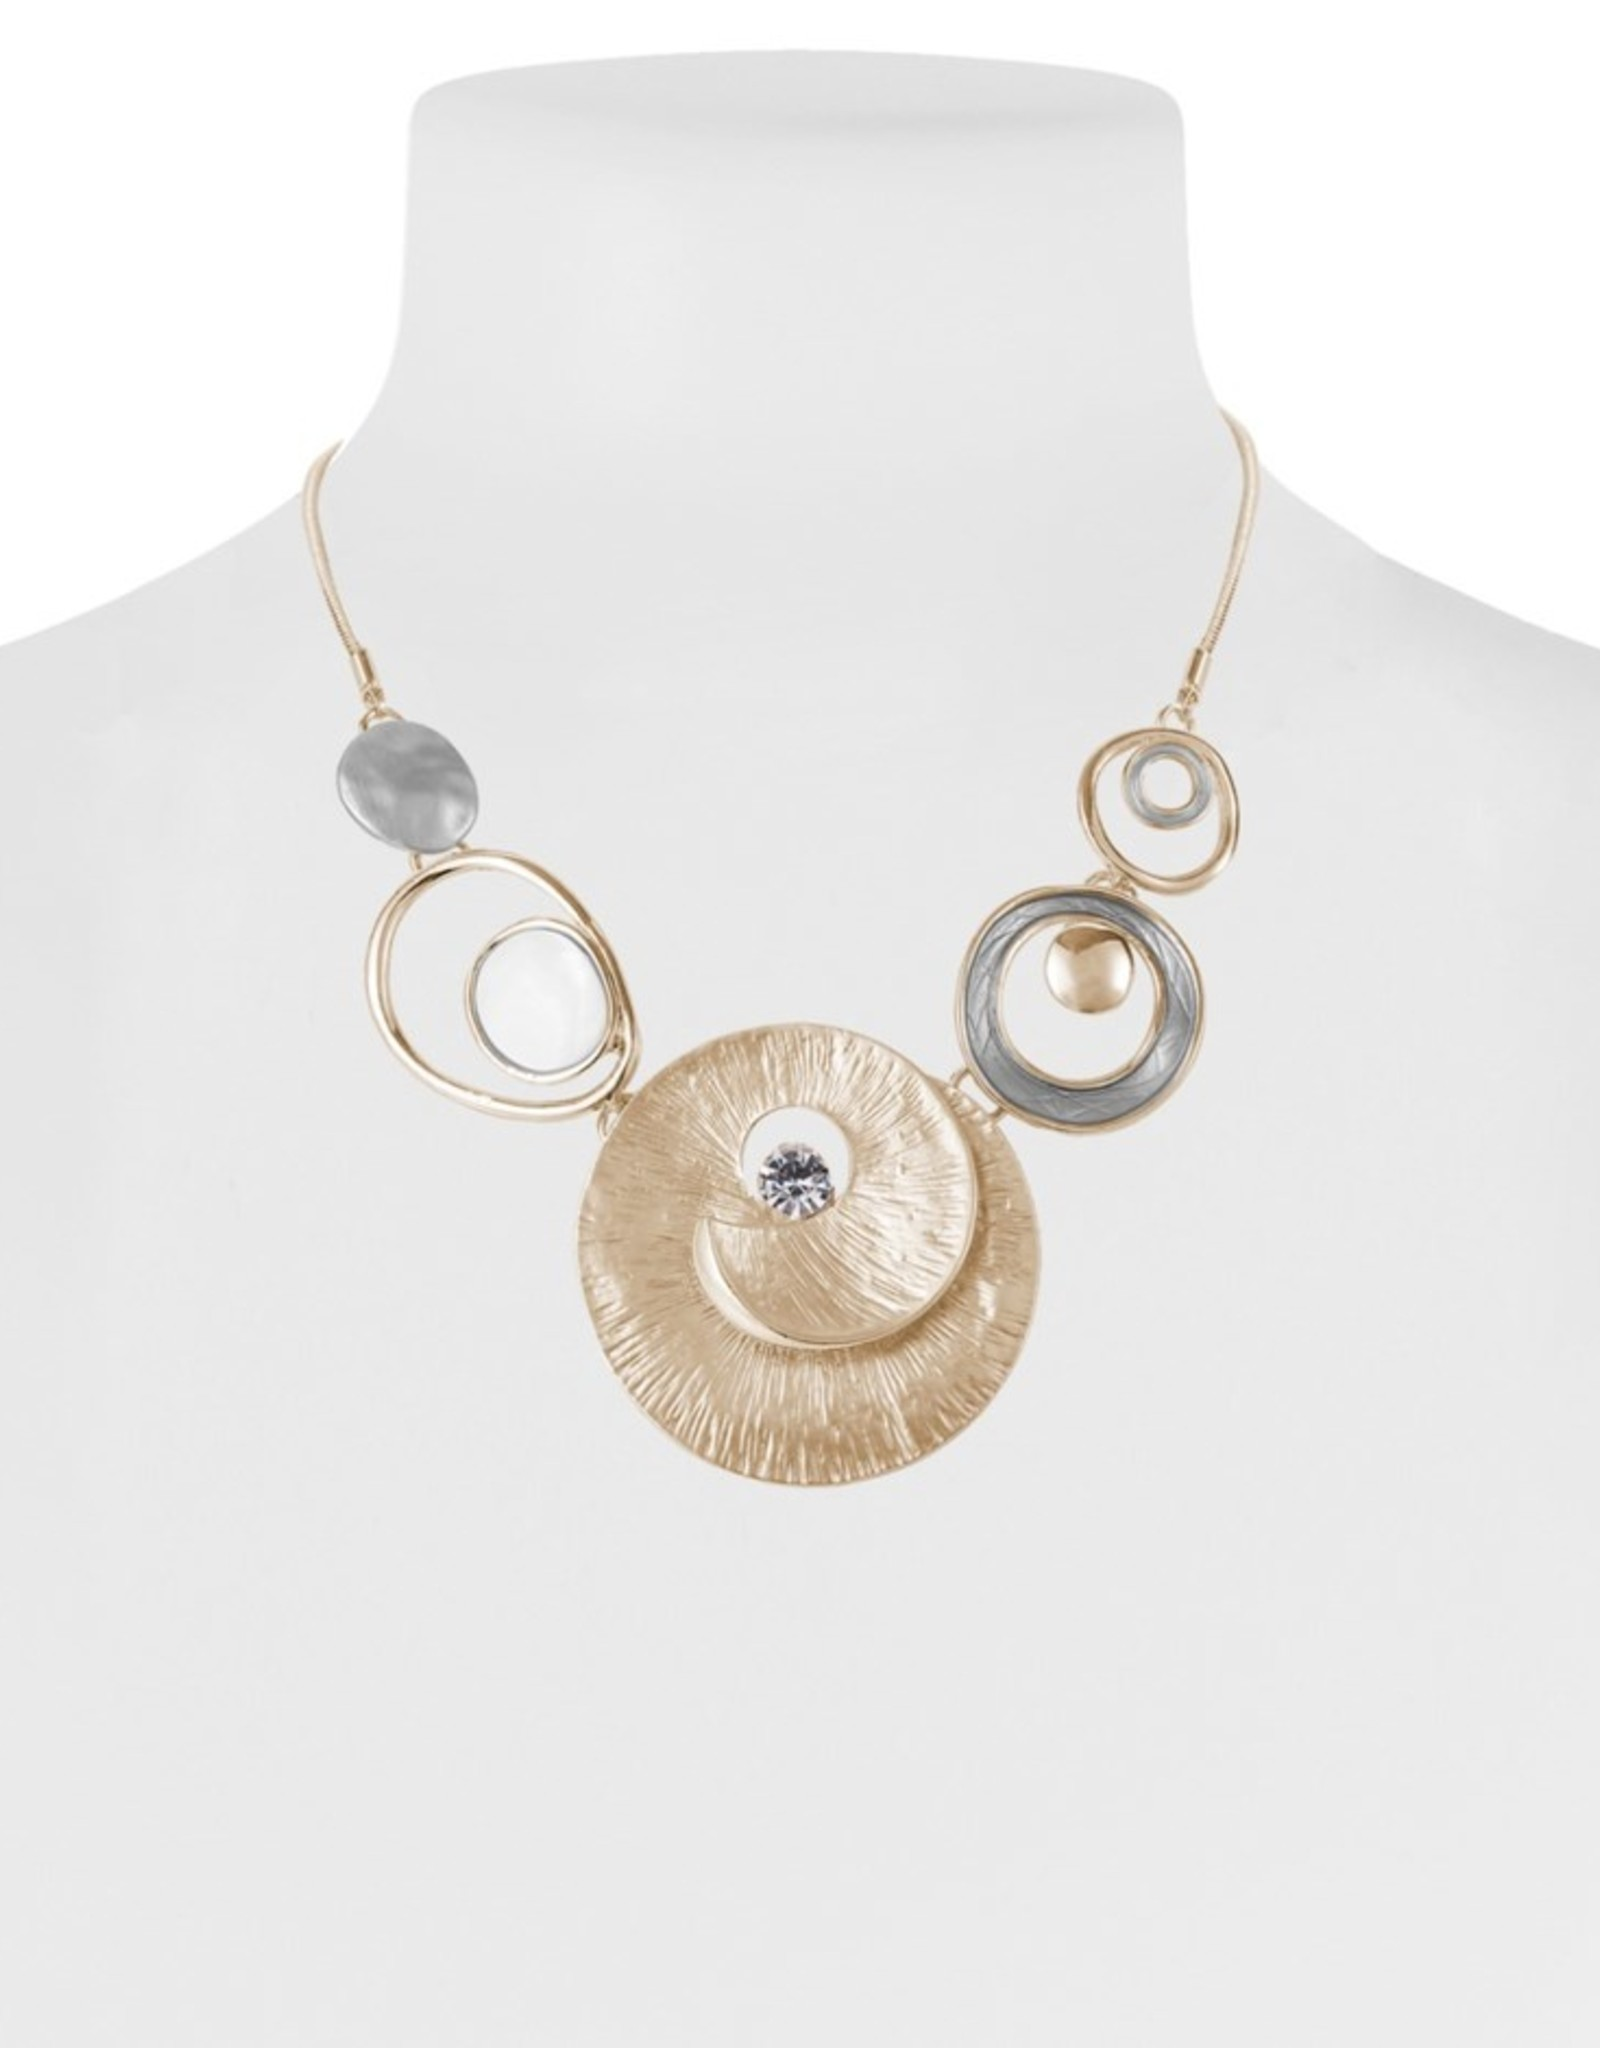 Collier coquillage or et argent